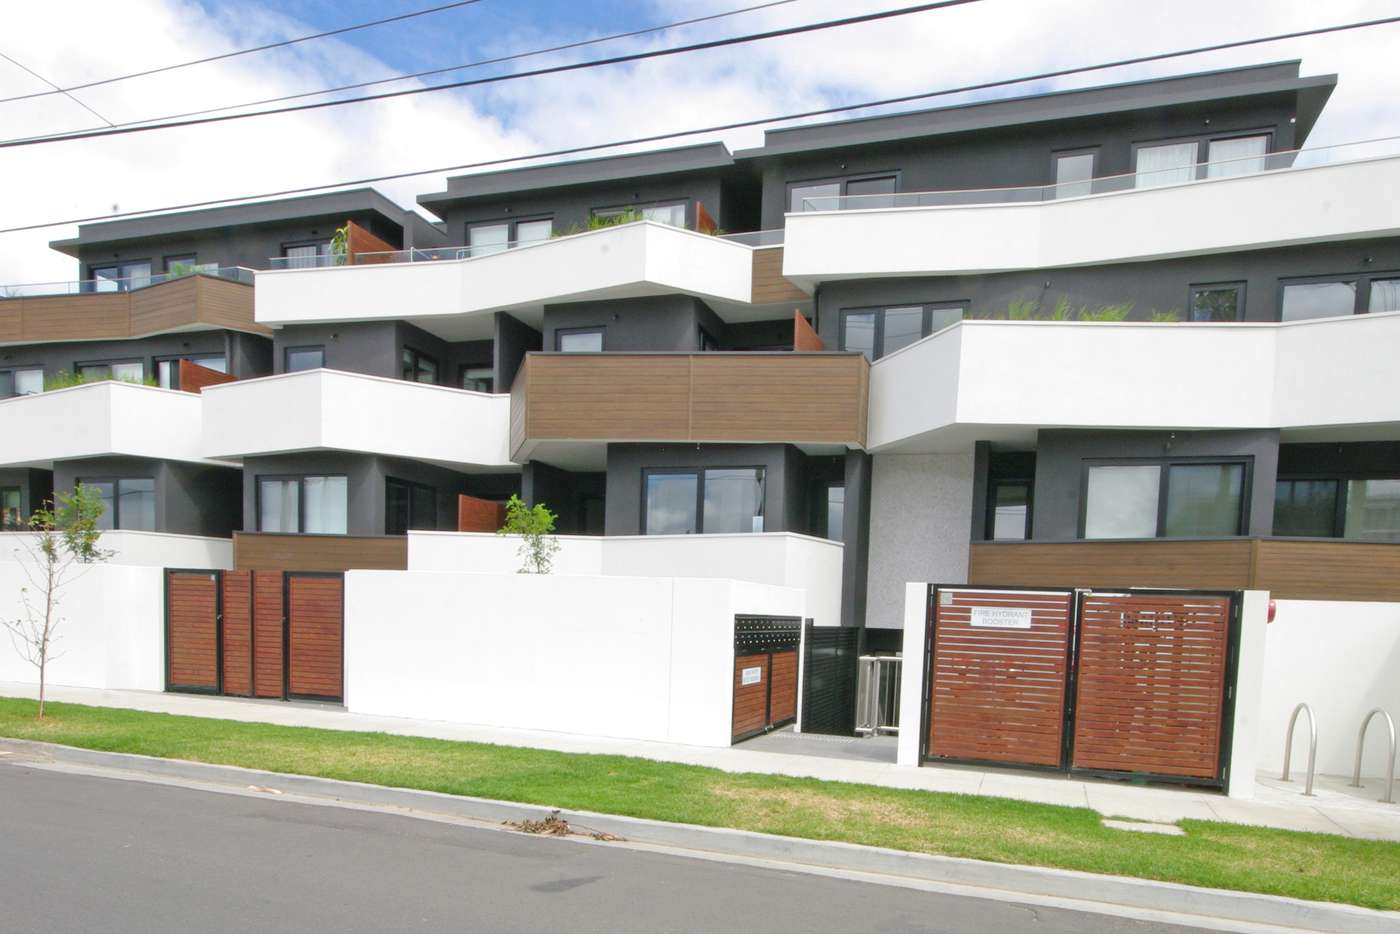 Main view of Homely apartment listing, 1/25 Nicholson Street, Bentleigh VIC 3204